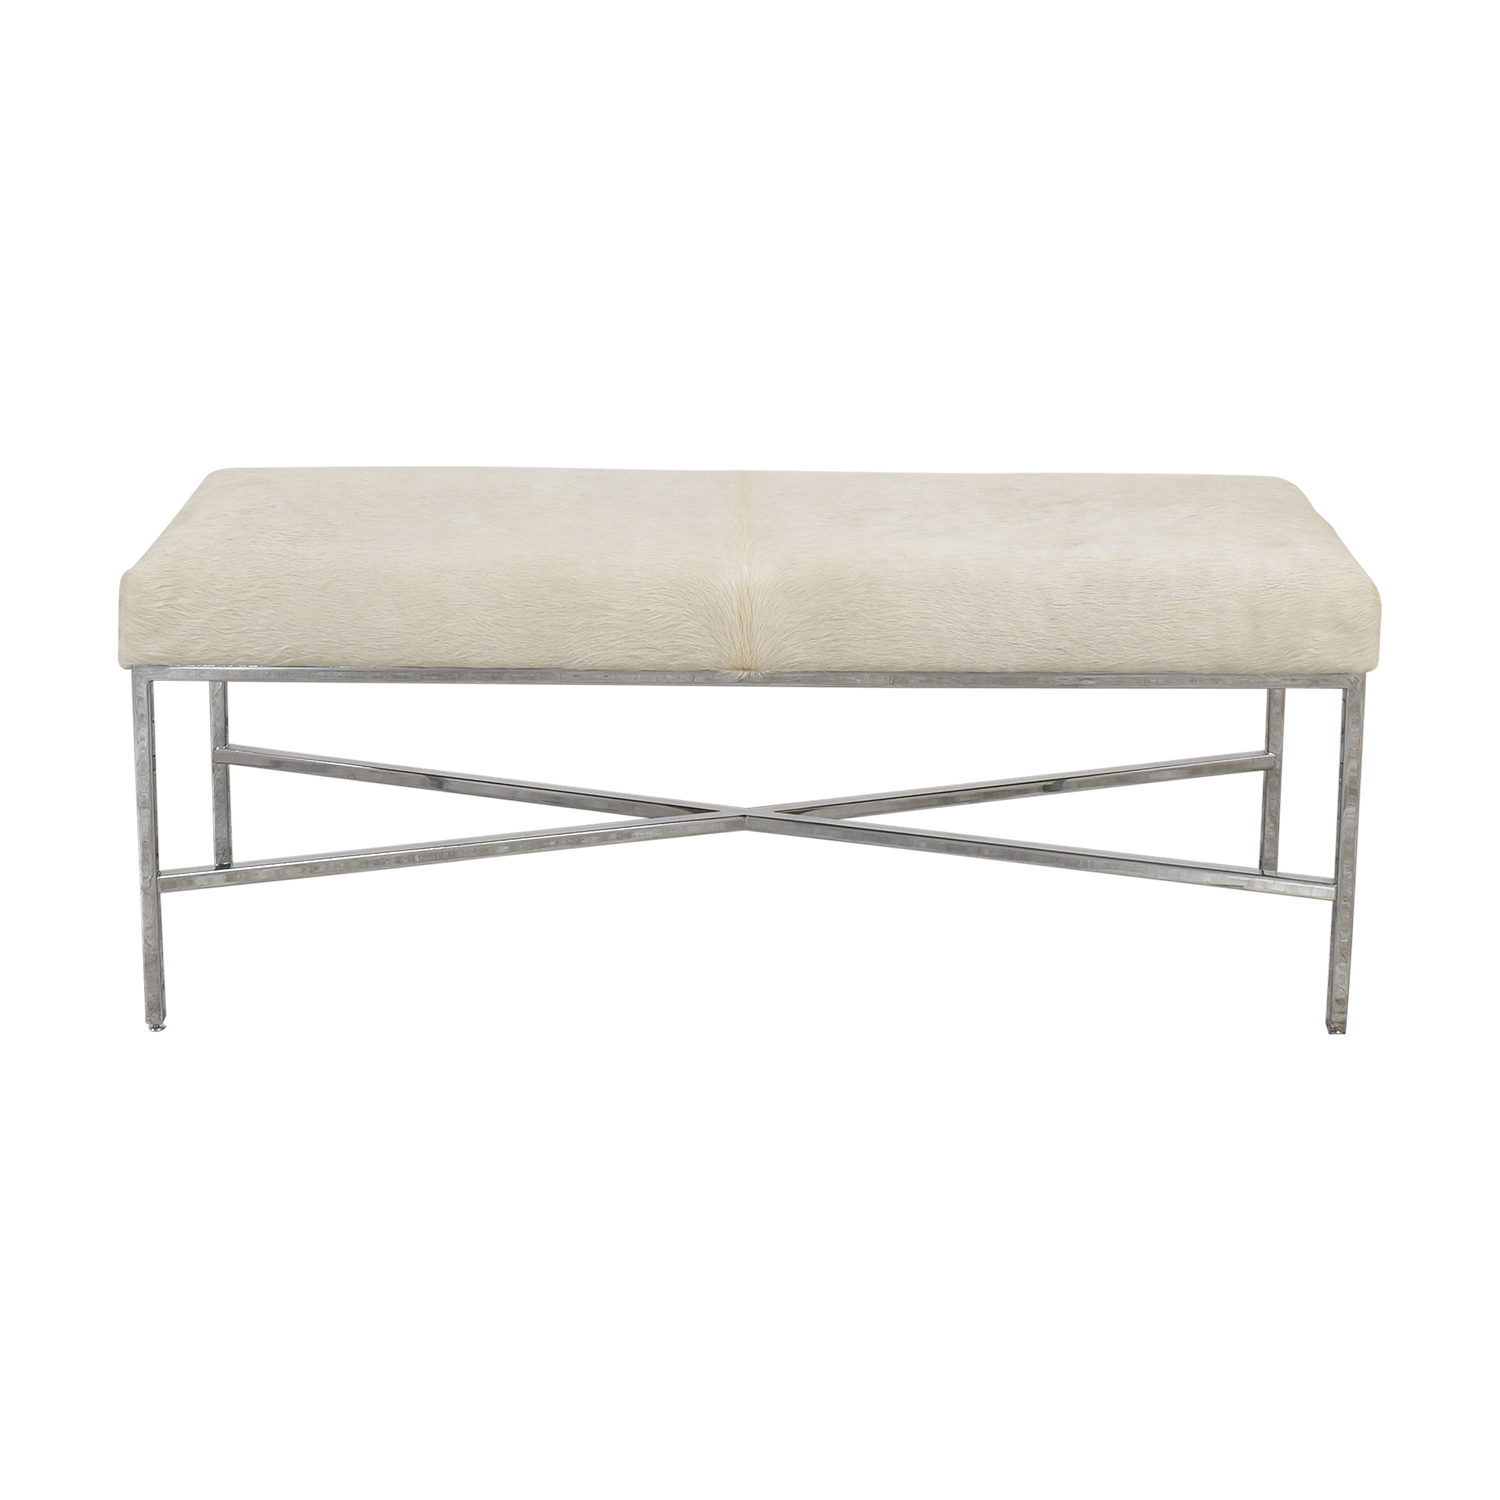 Outpost Original Outpost Original Metal Bench with Cowhide Chairs